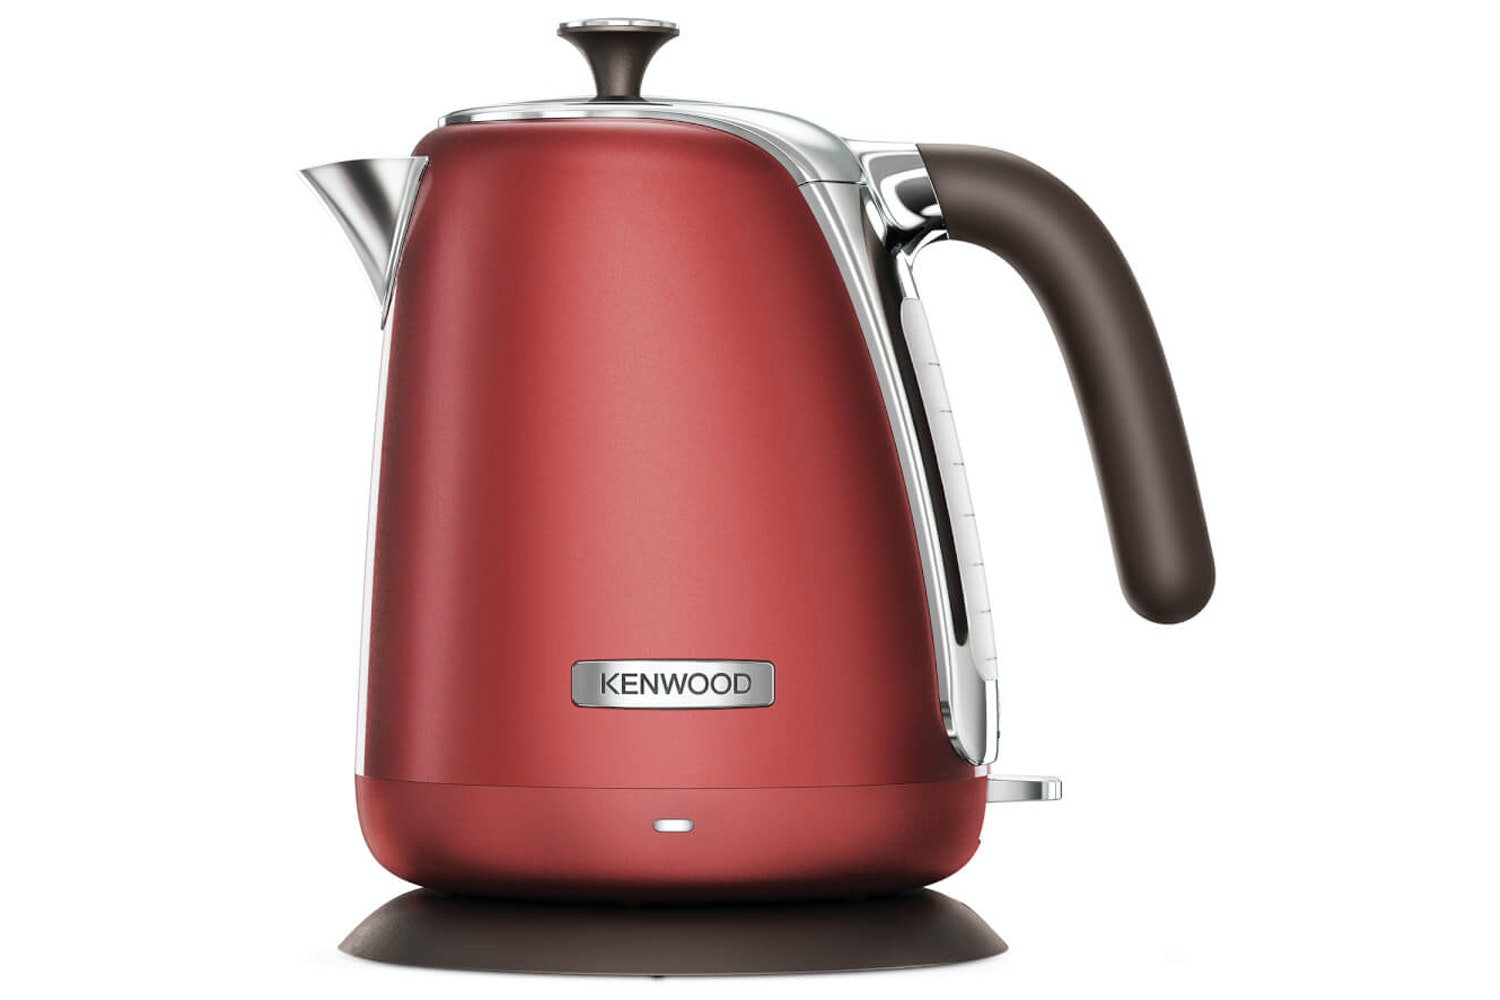 Kenwood 1.7L Turbo Kettle | ZJM300RD | Red